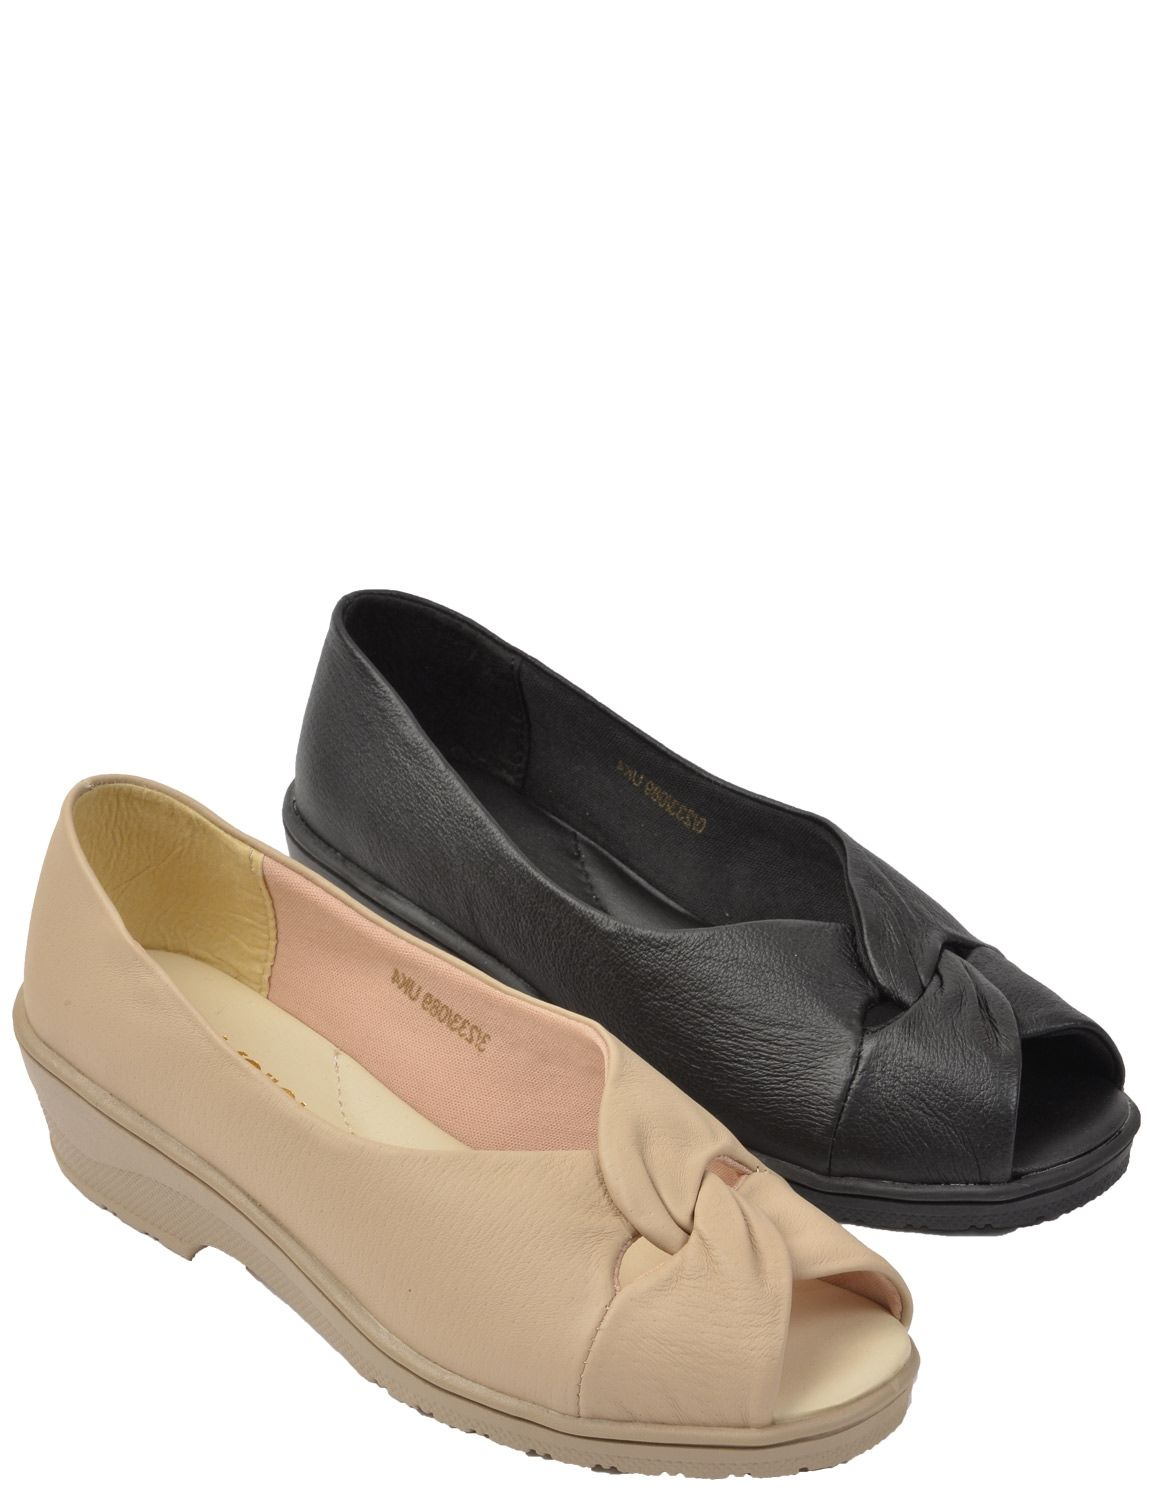 leather slip on comfort shoe chums